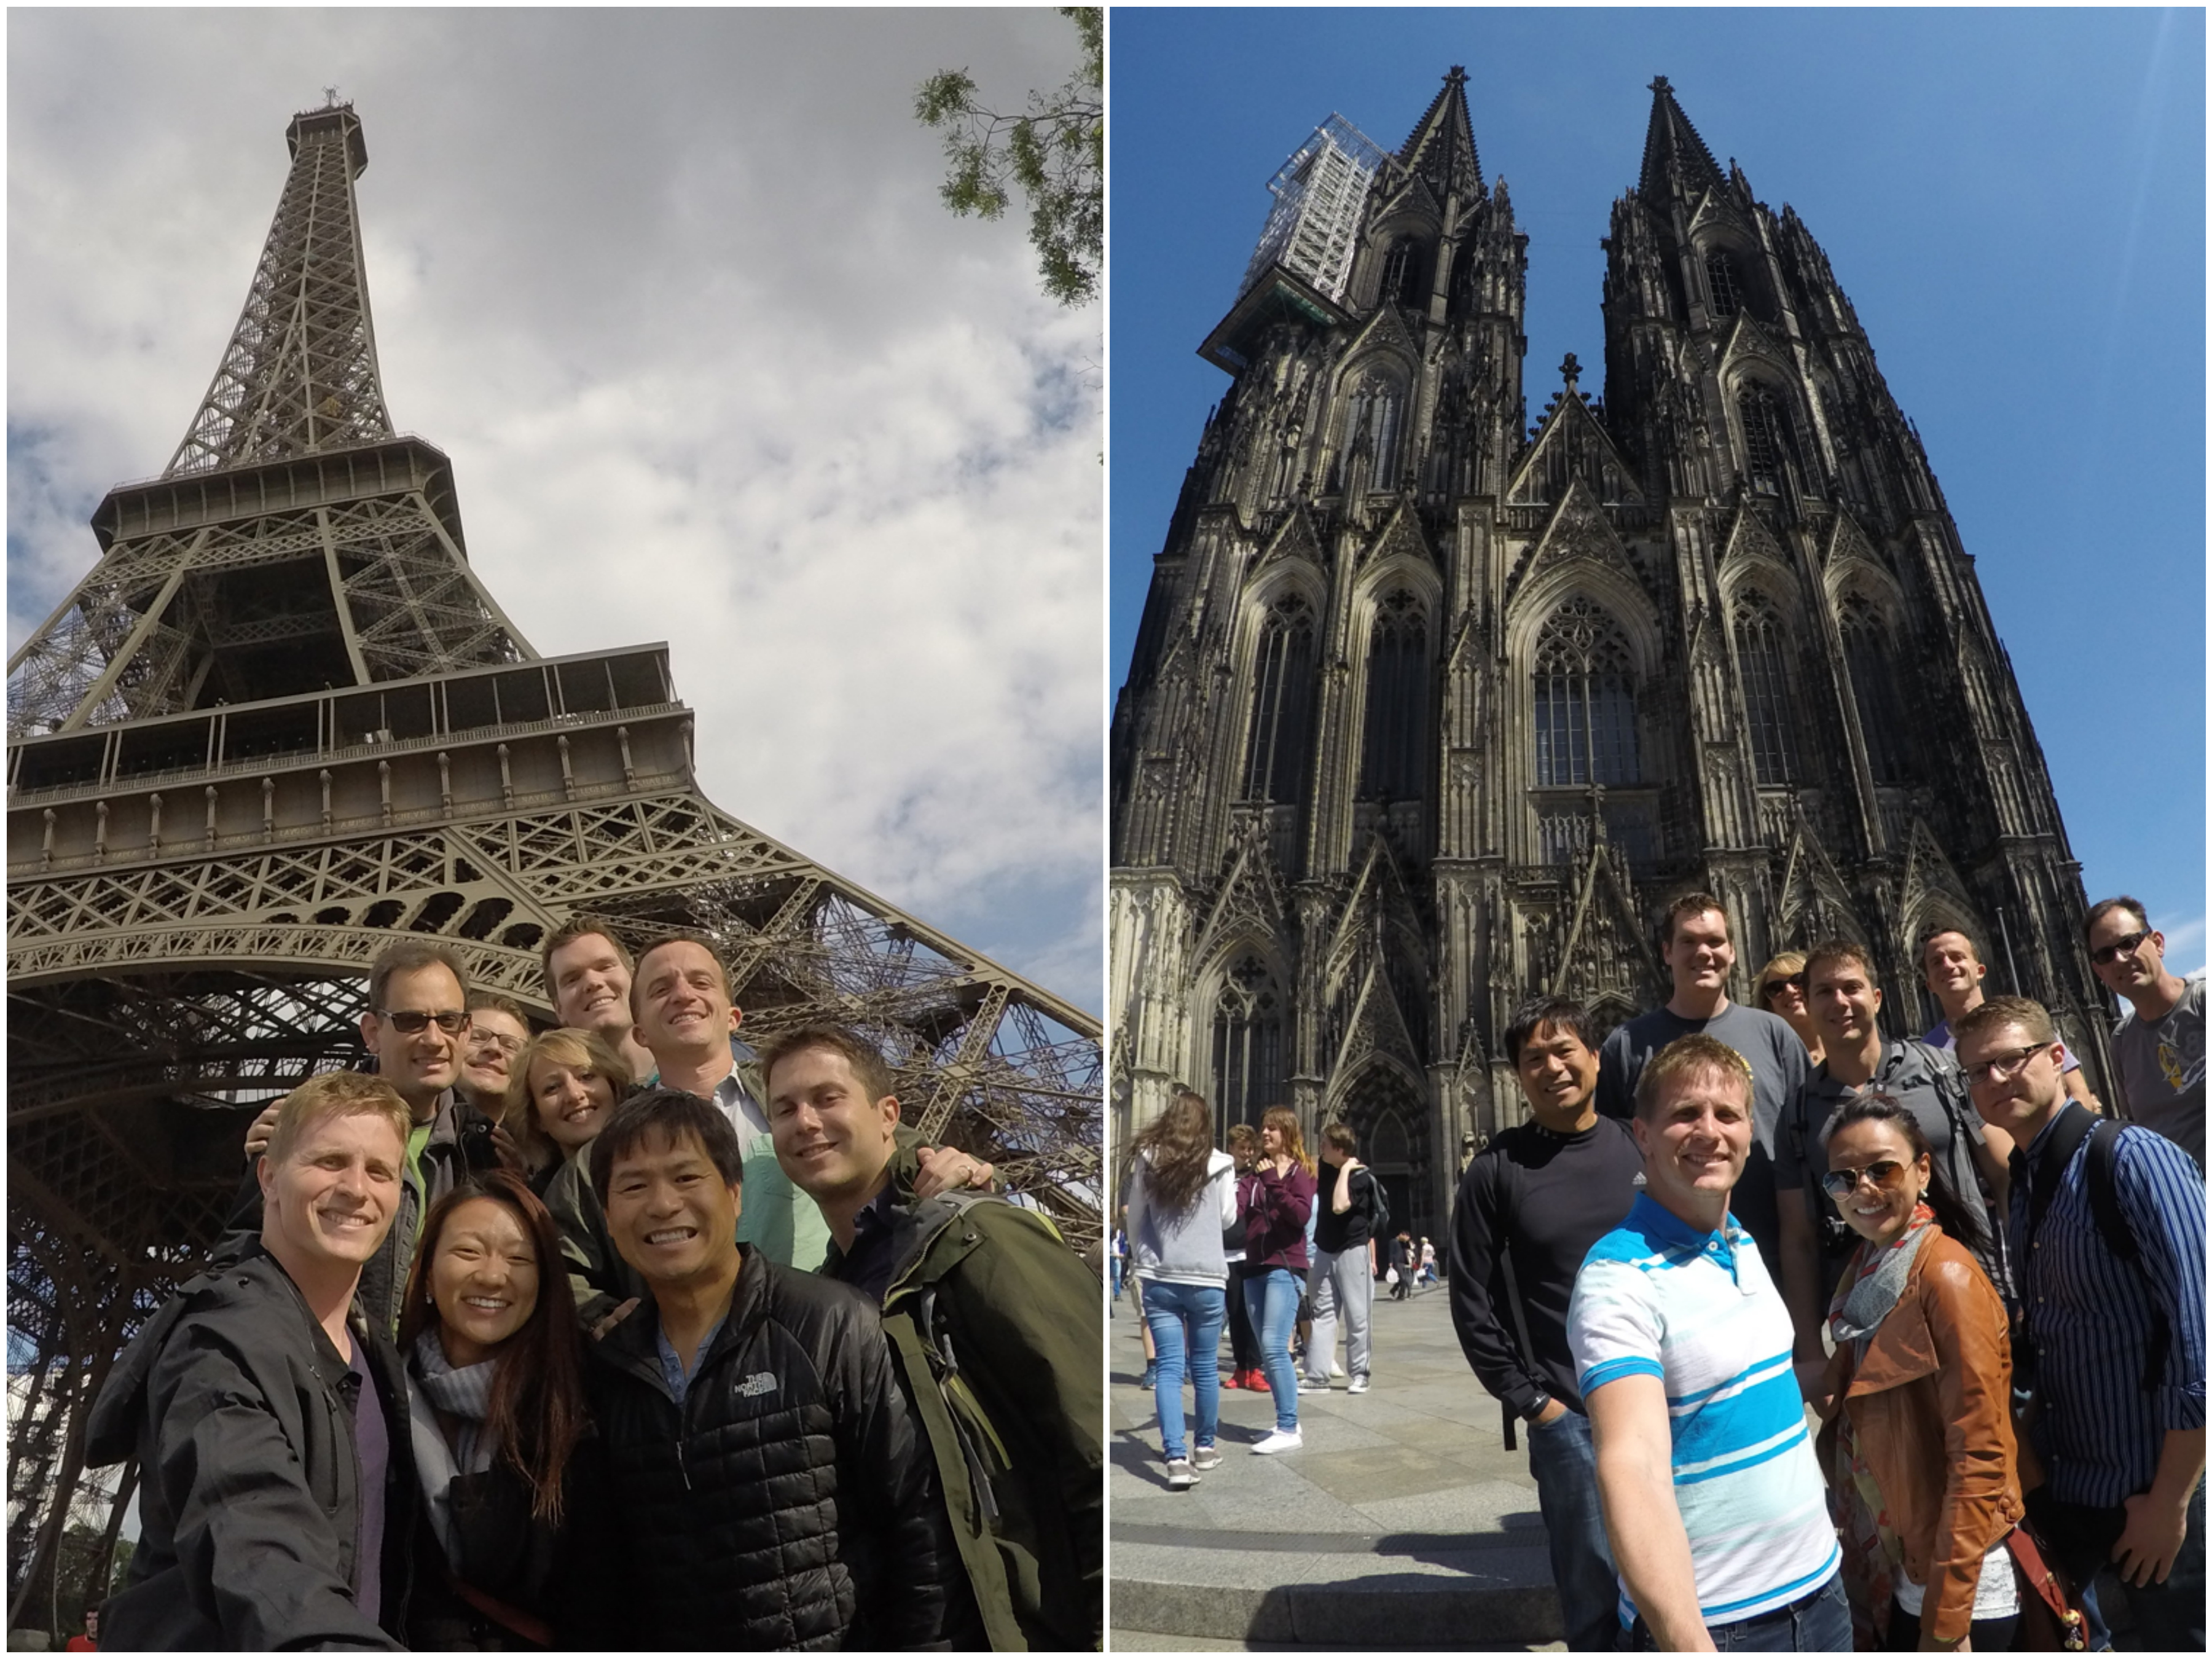 Eiffel Tower & Cologne Cathedral